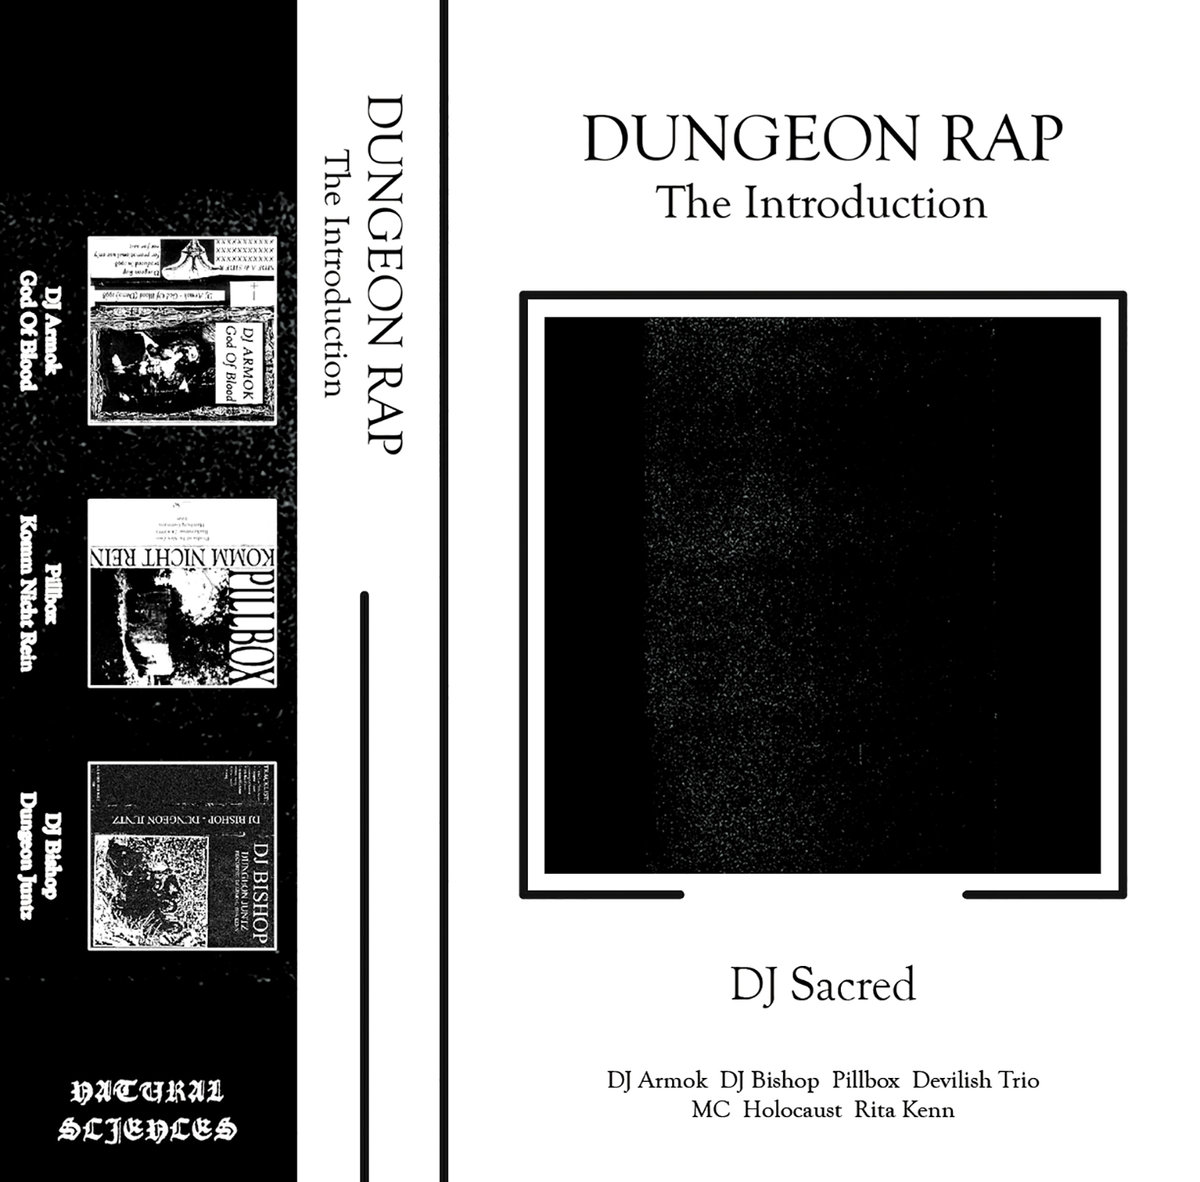 dungeon rap.jpg